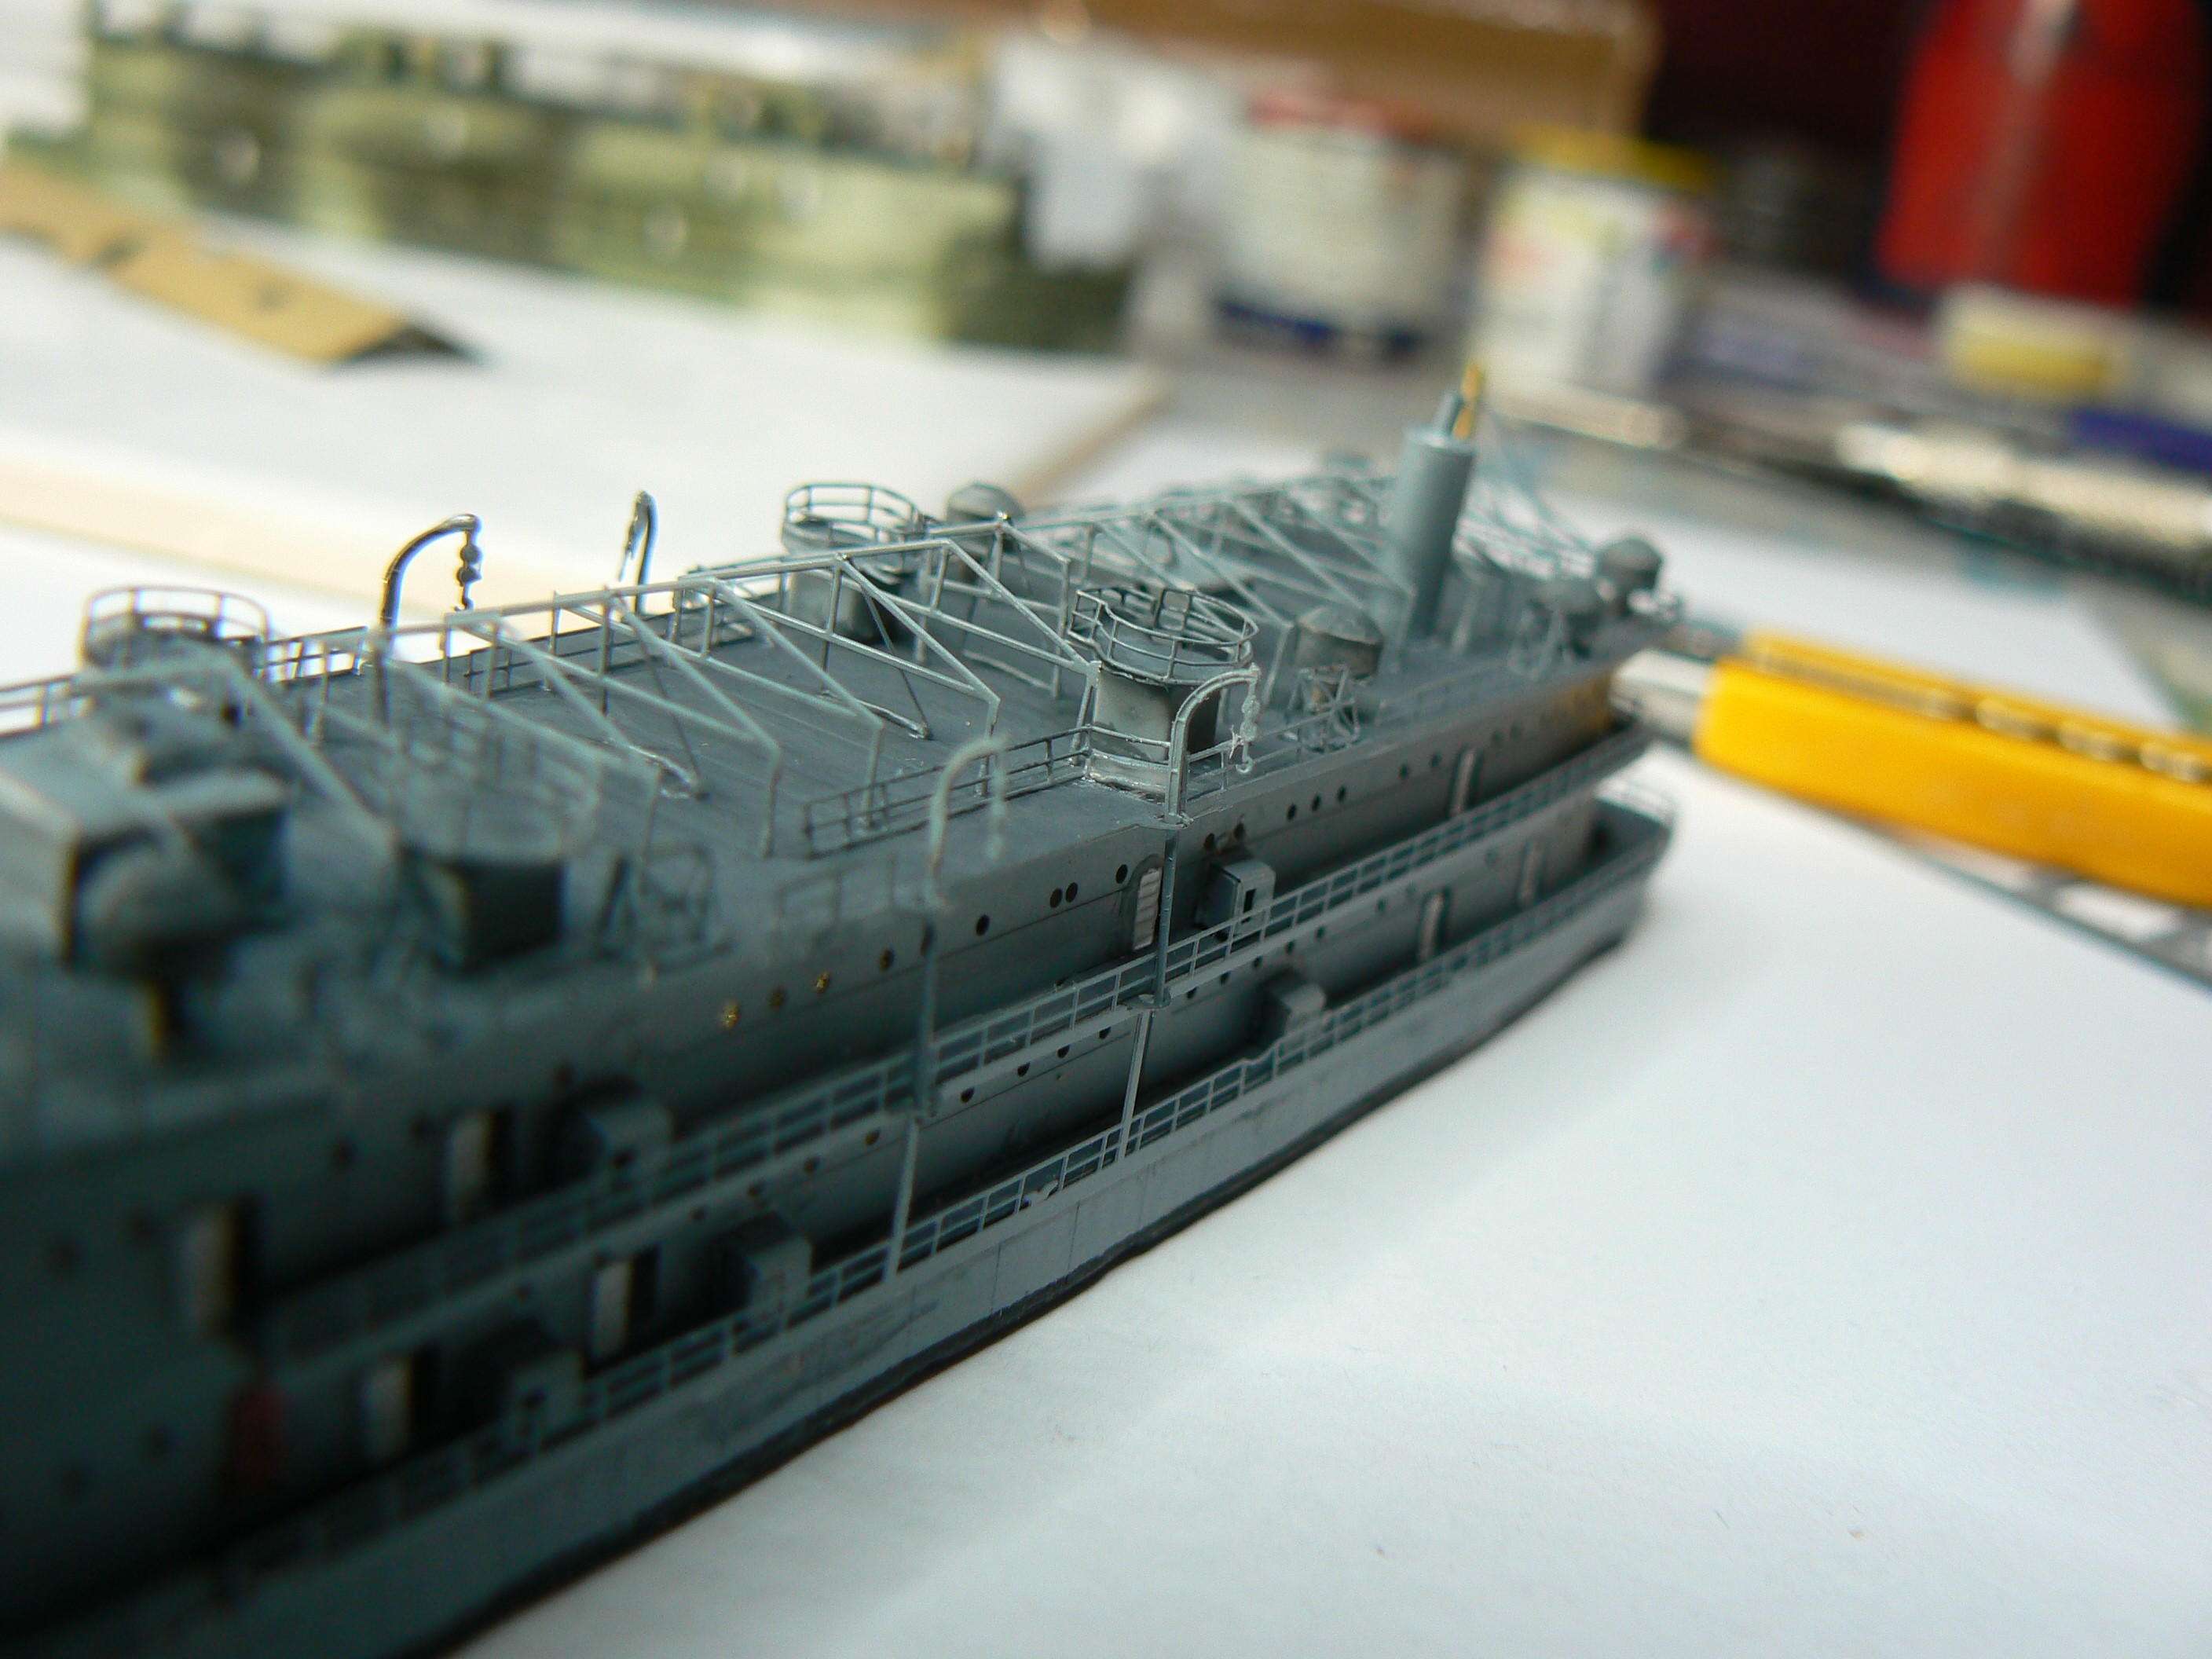 MARE ISLAND NAVAL SHIP YARD  1/700 - Page 3 JjwnRB